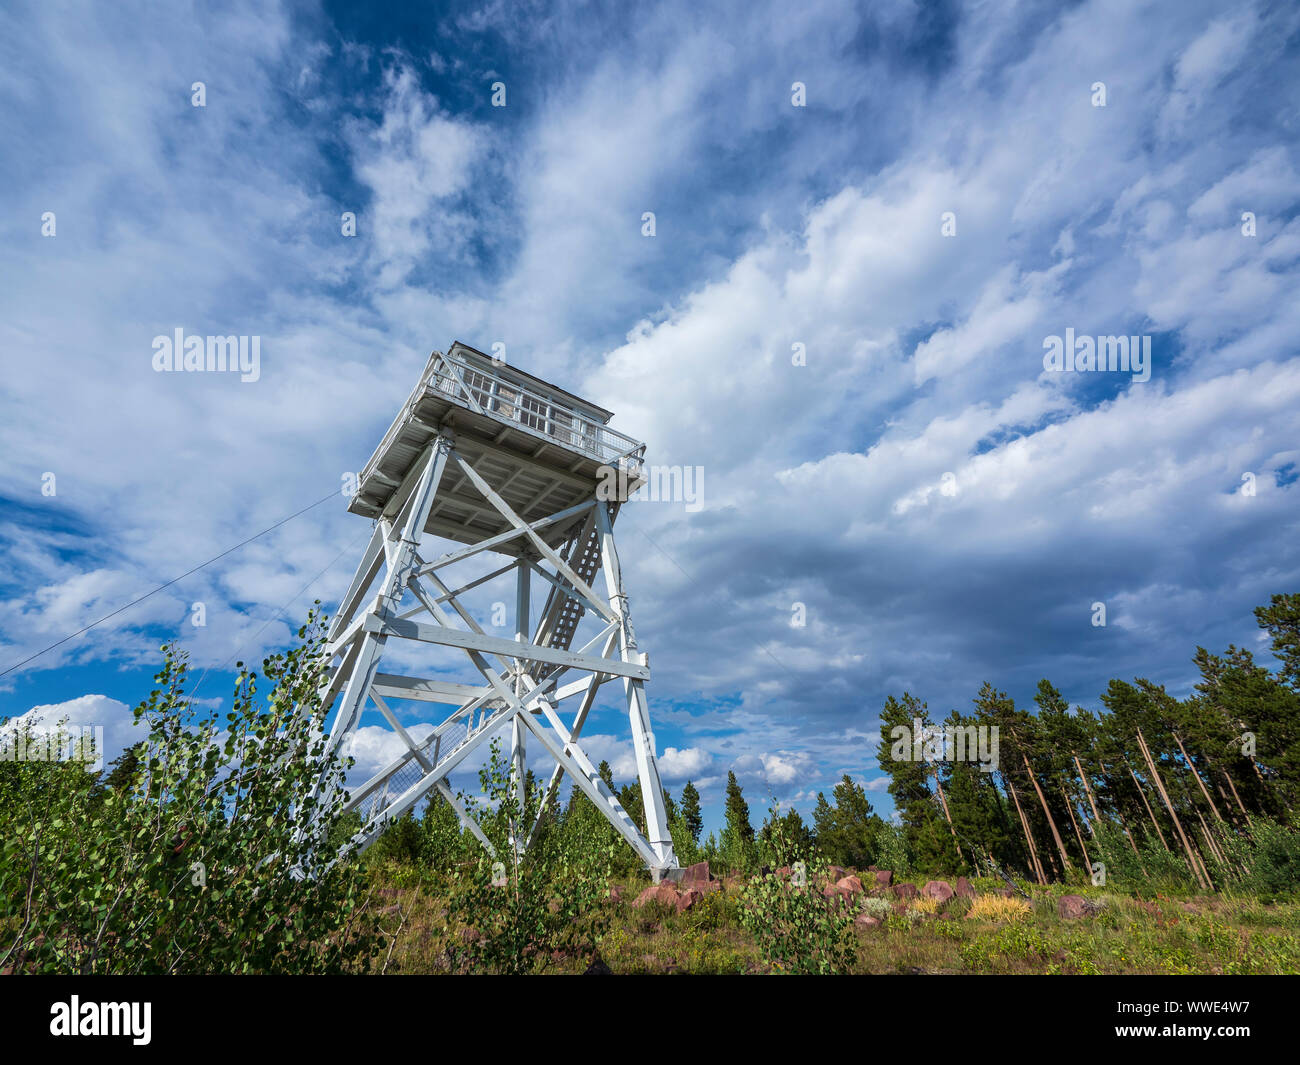 Ute Mountain Fire Lookout Tower National Historical Site, Ashley National Forest, Utah. Stock Photo